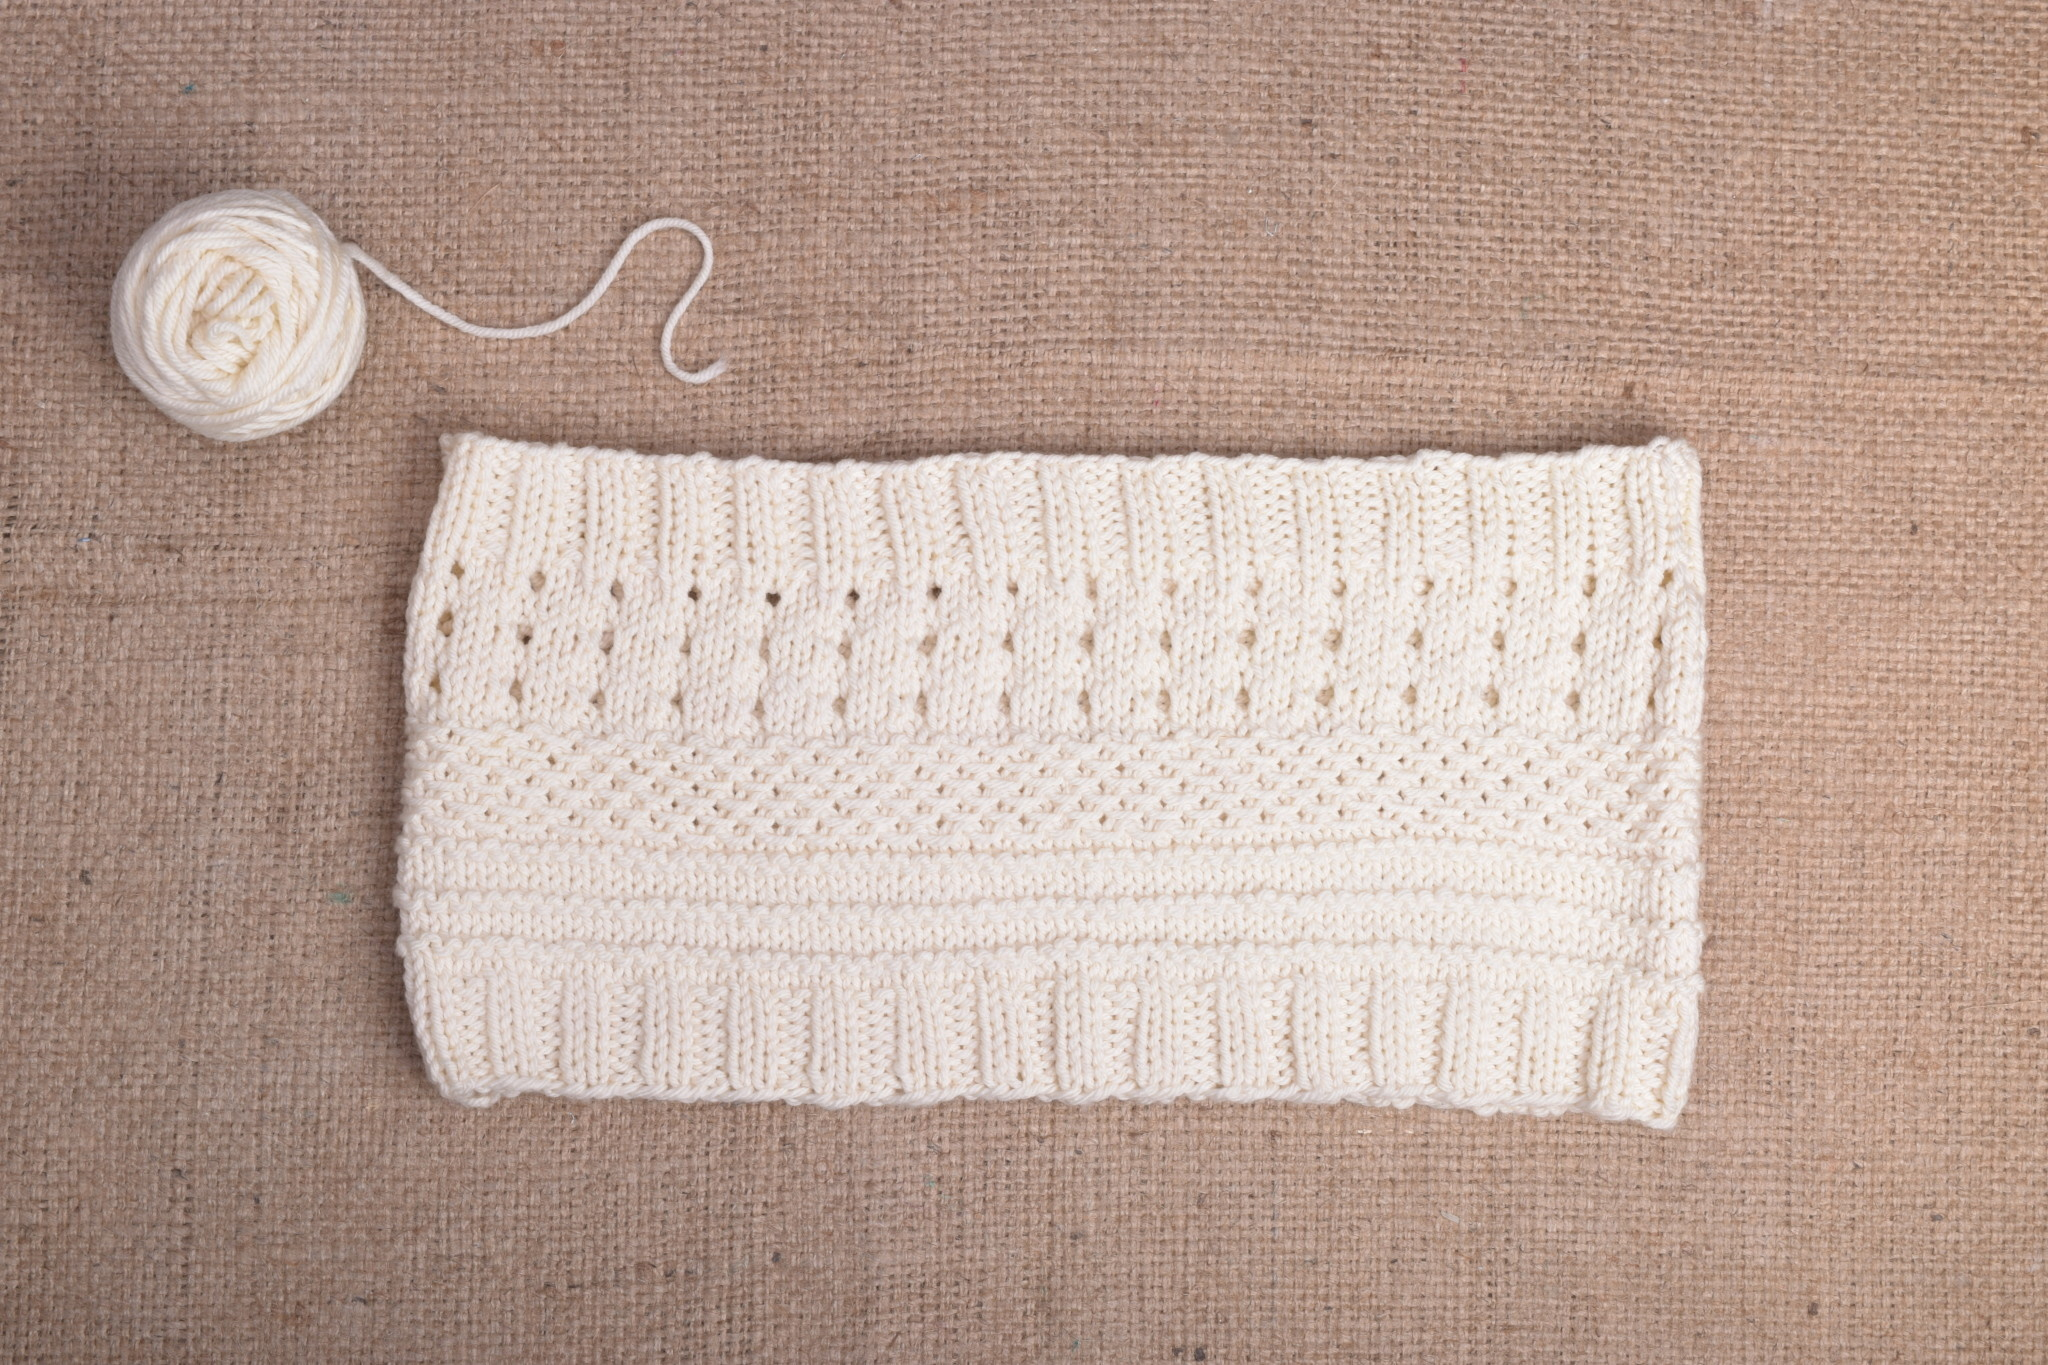 Knitting 101: Learn to Knit; Tuesday, April 9, 16, 23, 30;  6:00-8:00PM